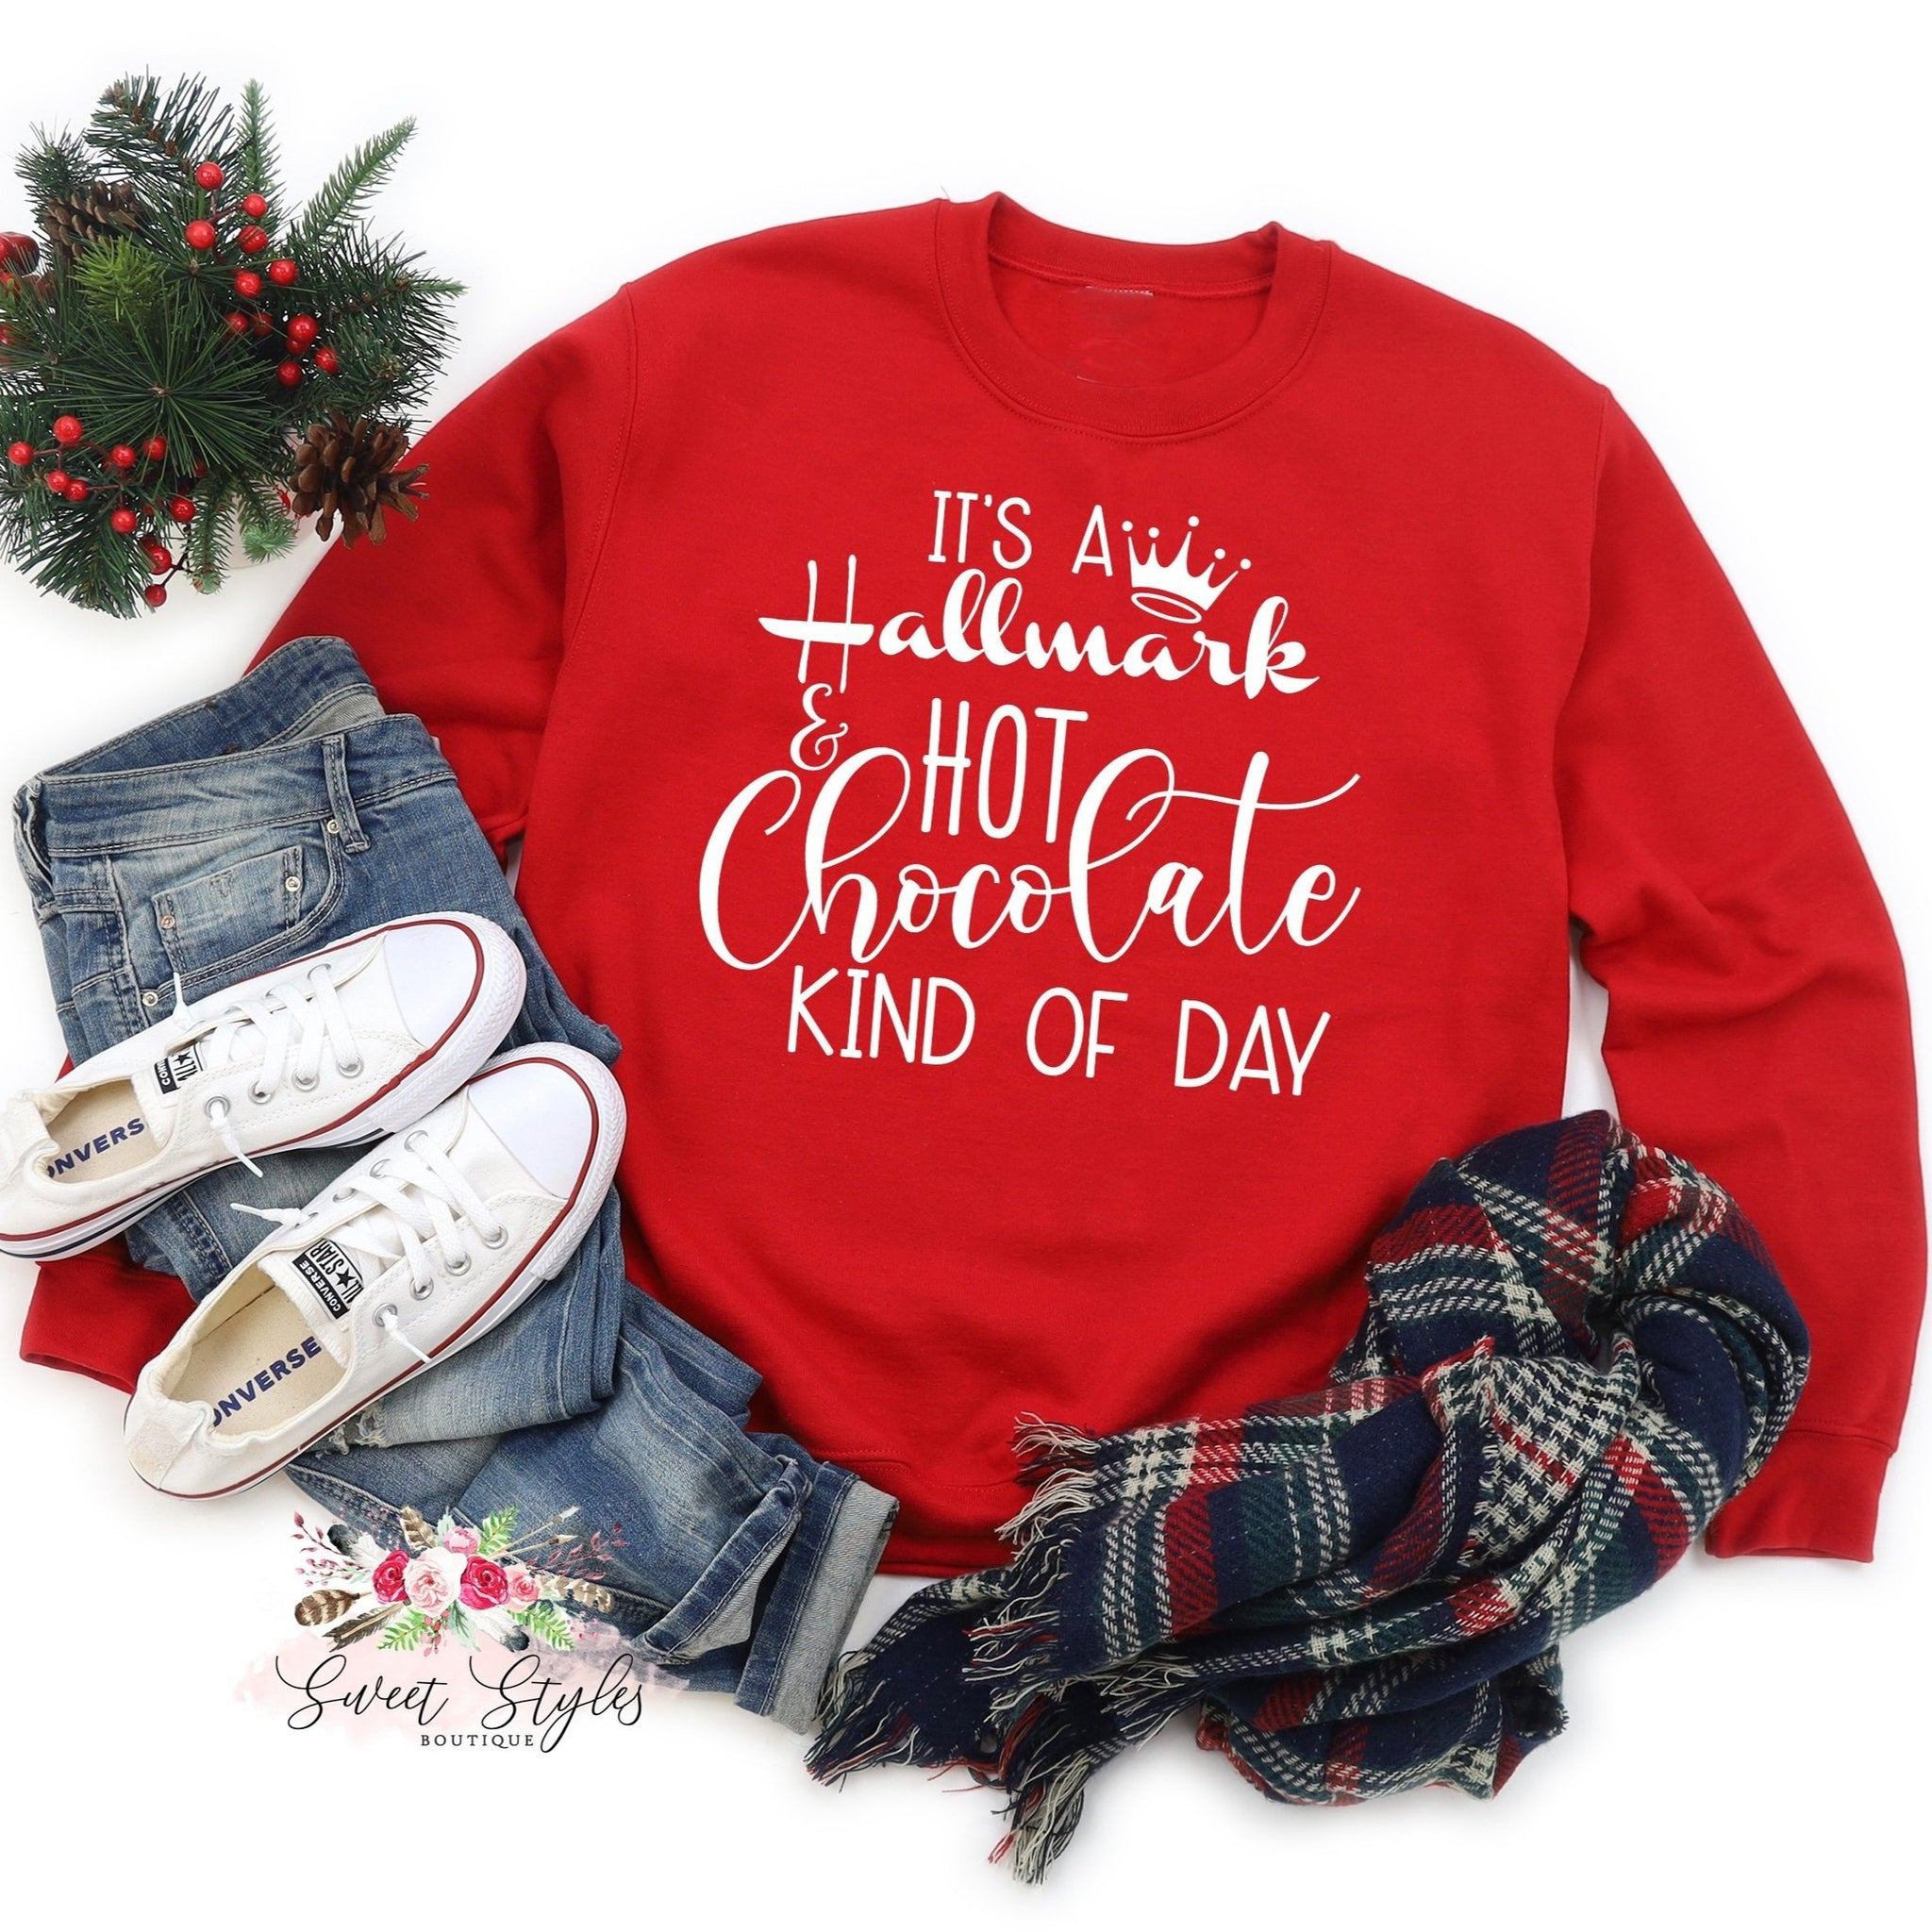 hallmark hot chocolate-Sweet Styles boutique